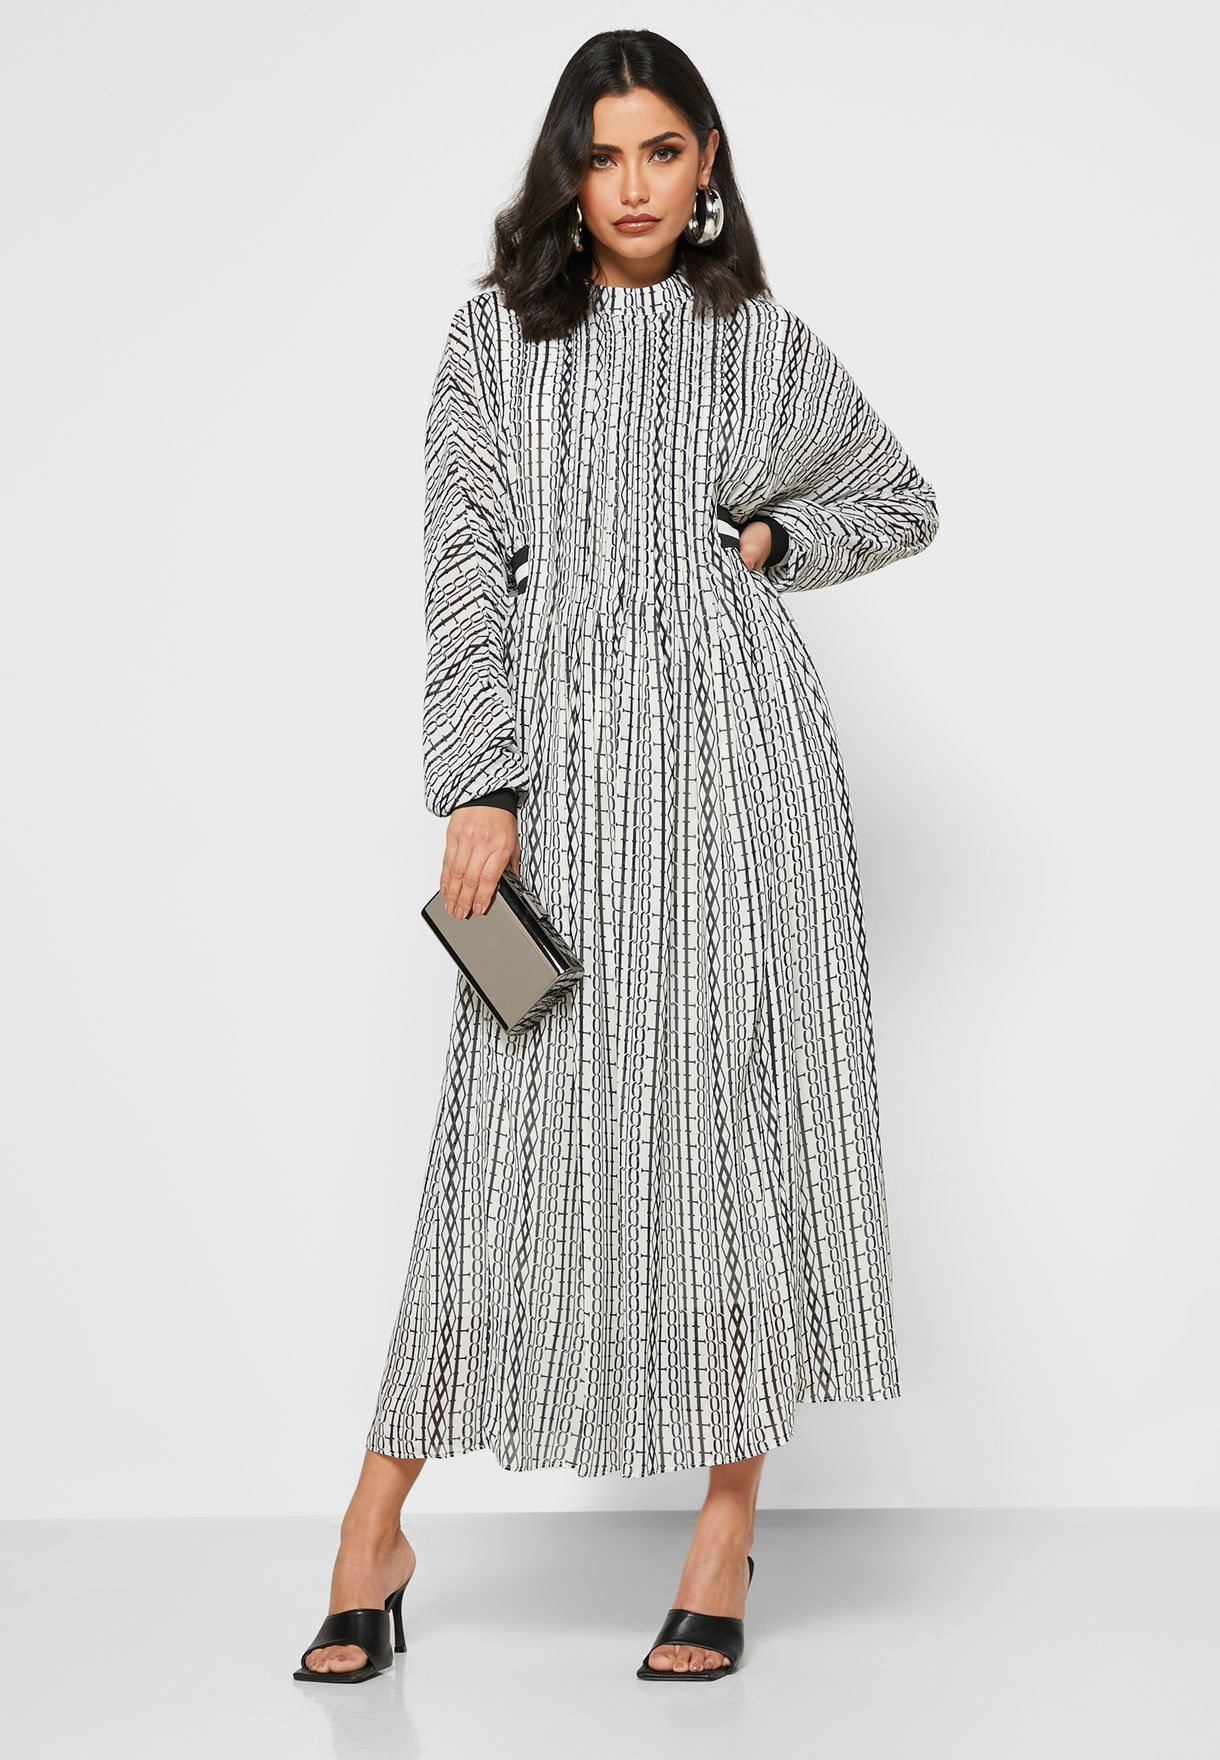 Printed Sheer Overlay Midi Dress